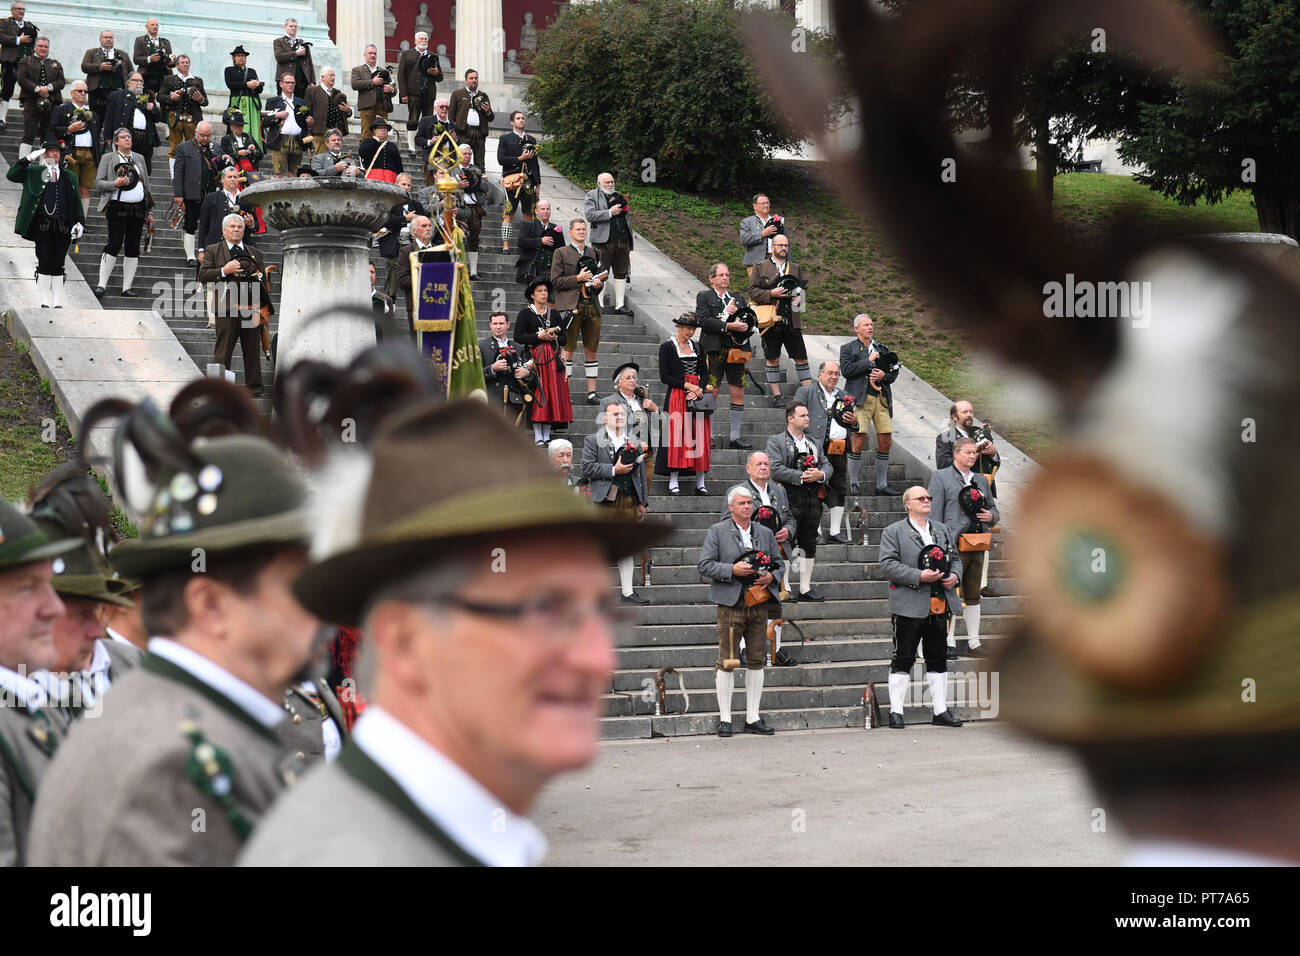 Munich, Bavaria. 07th Oct, 2018. The shooters take off their hats after the traditional saluting gun shooting on a staircase at the Theresienwiese on the last day of the October Festival 2018. Credit: Felix Hörhager/dpa/Alamy Live News - Stock Image